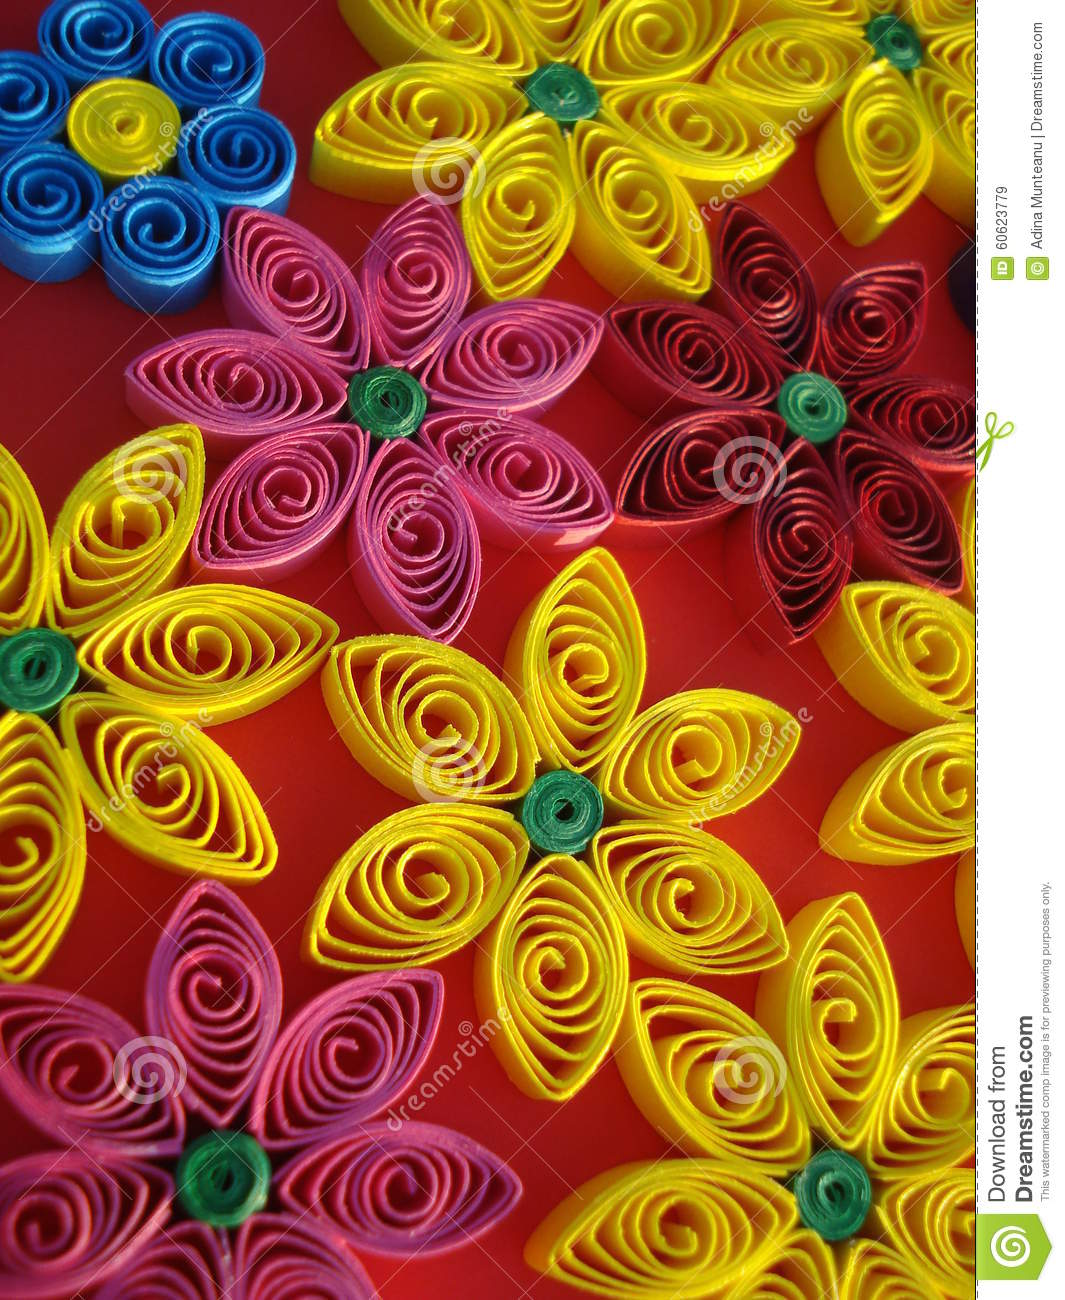 Colorful flowers made of paper on orange background stock image colorful flowers made of paper on orange background stock image image of paper craft 60623779 mightylinksfo